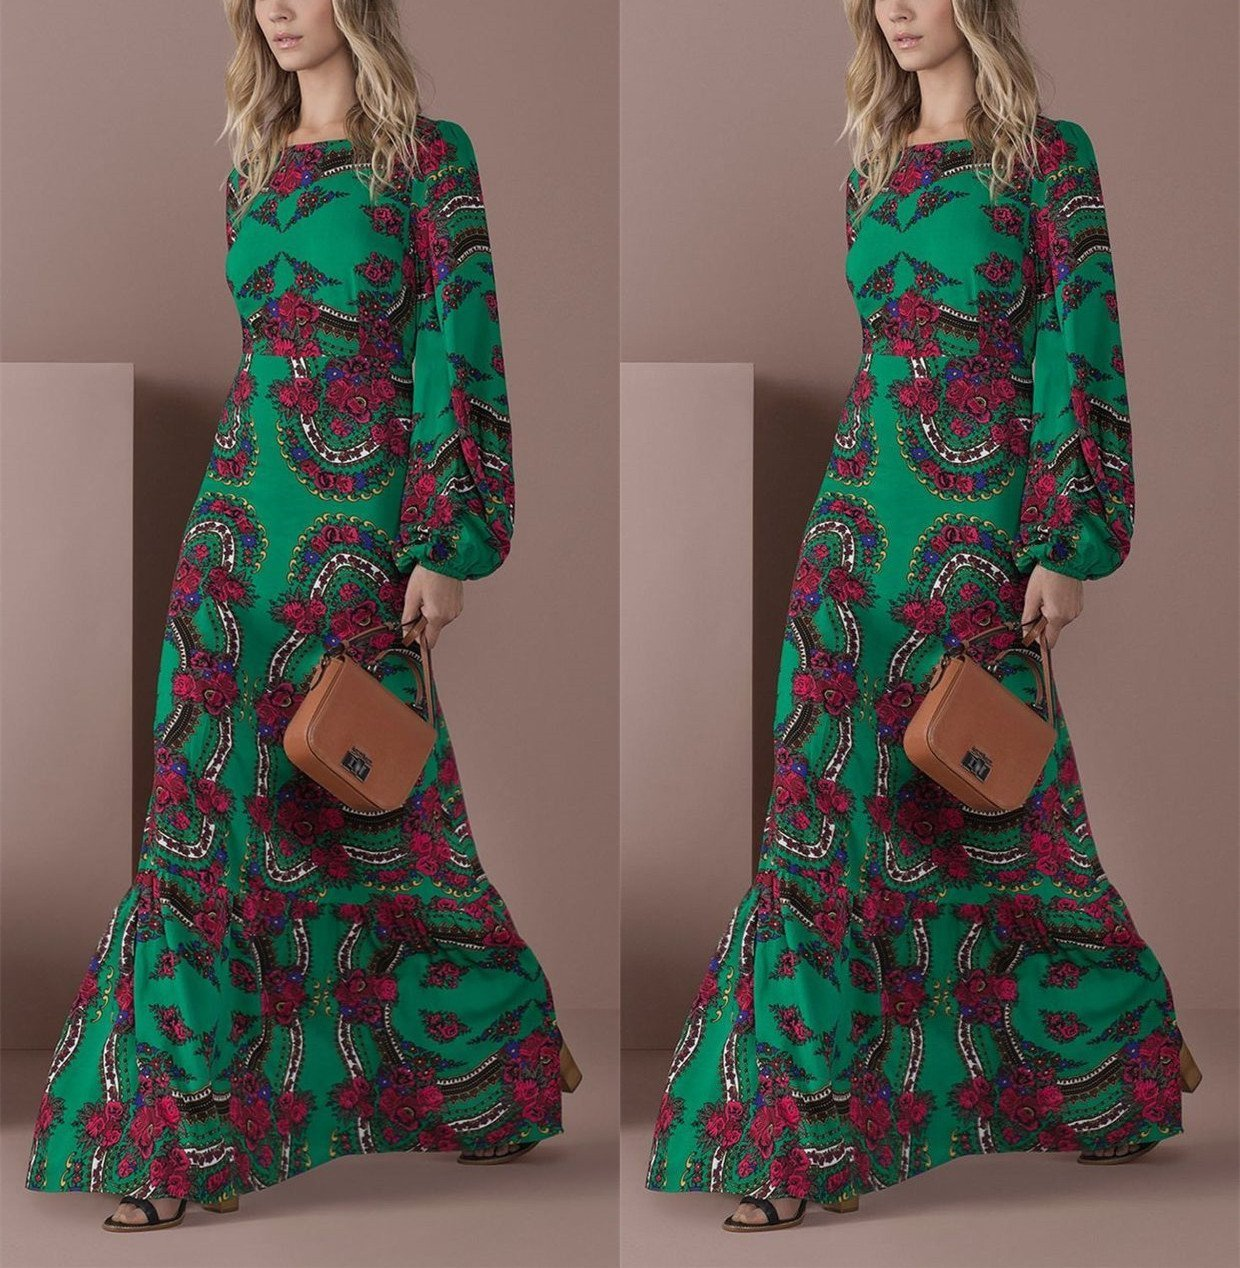 Women Elegant Green Long-Sleeved Floral Printed Maxi Dress